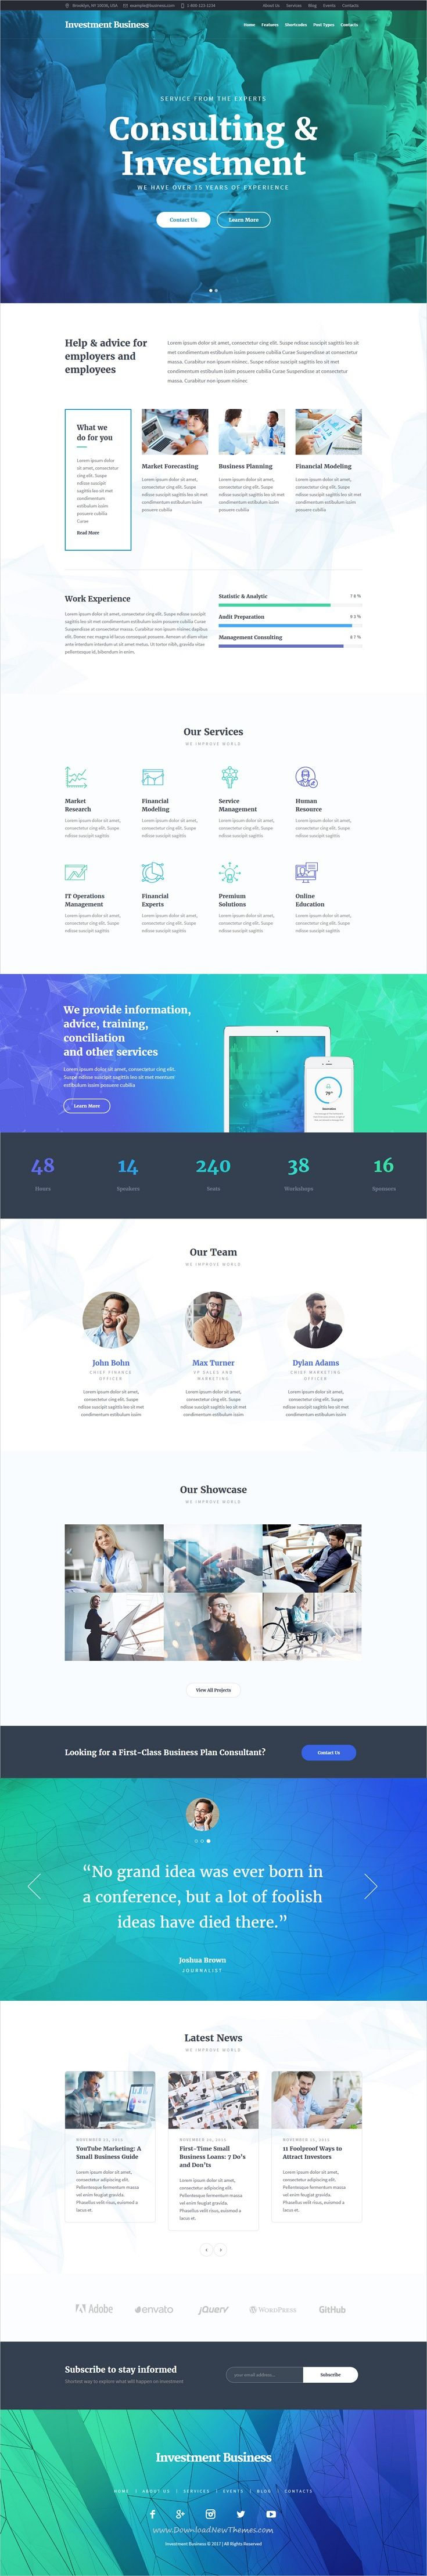 Investment Business is a powerful responsive #WordPress theme for #consulting and #financial advisory companies website download now➩ https://themeforest.net/item/investment-business-finance-investment-consulting-wordpress-theme/19375018?ref=Datasata